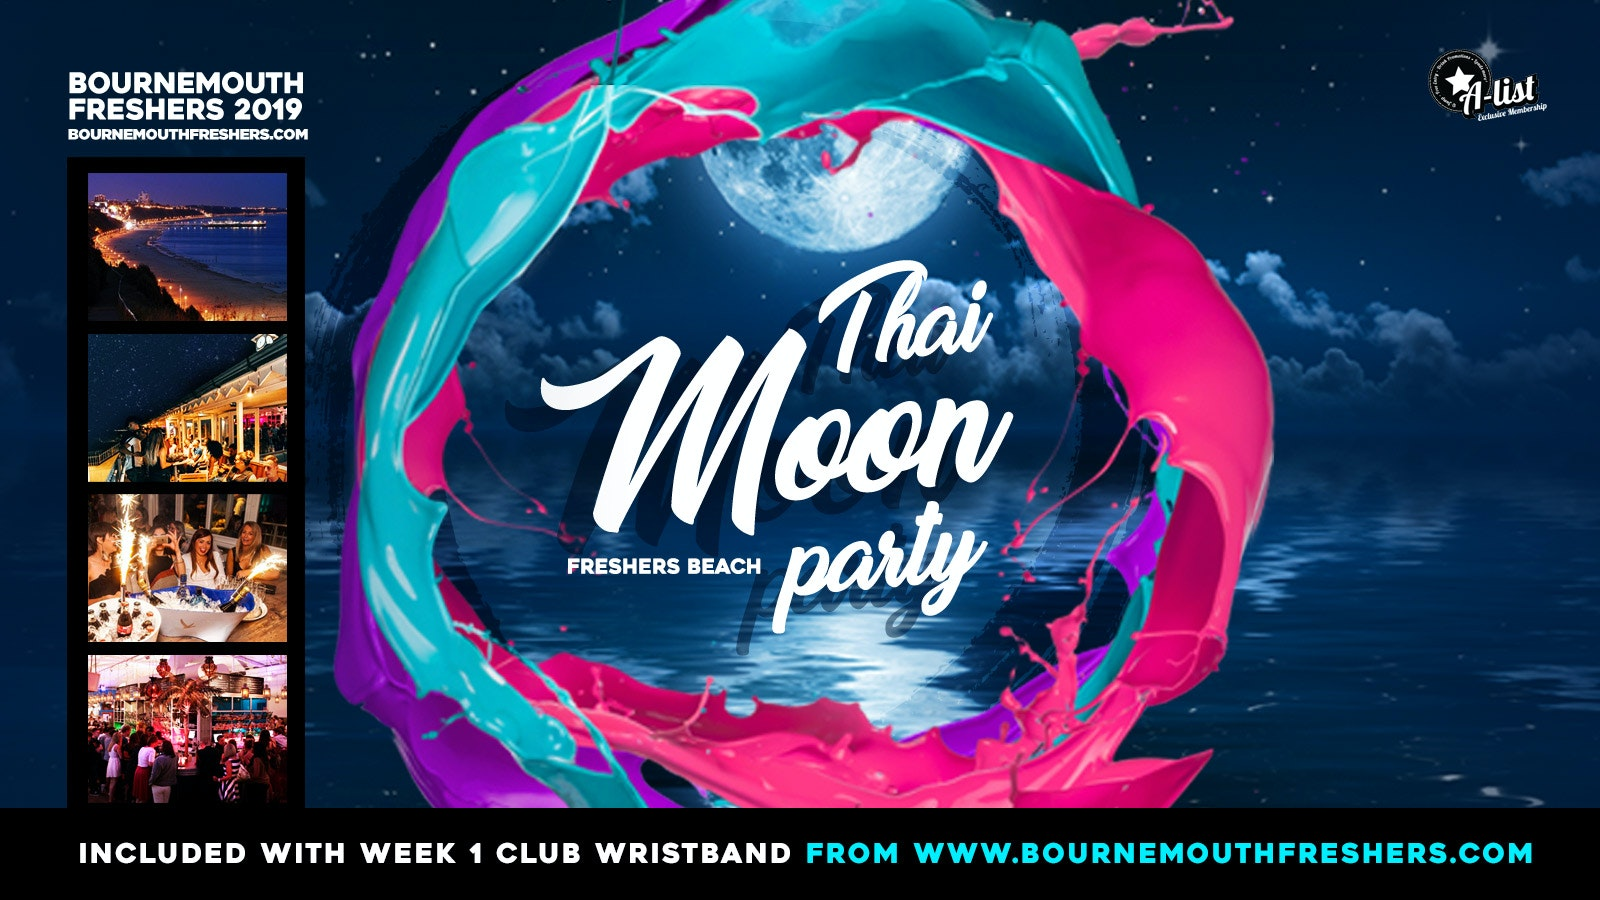 Freshers Thai Moon Beach Party at Aruba // Bournemouth Freshers 2019